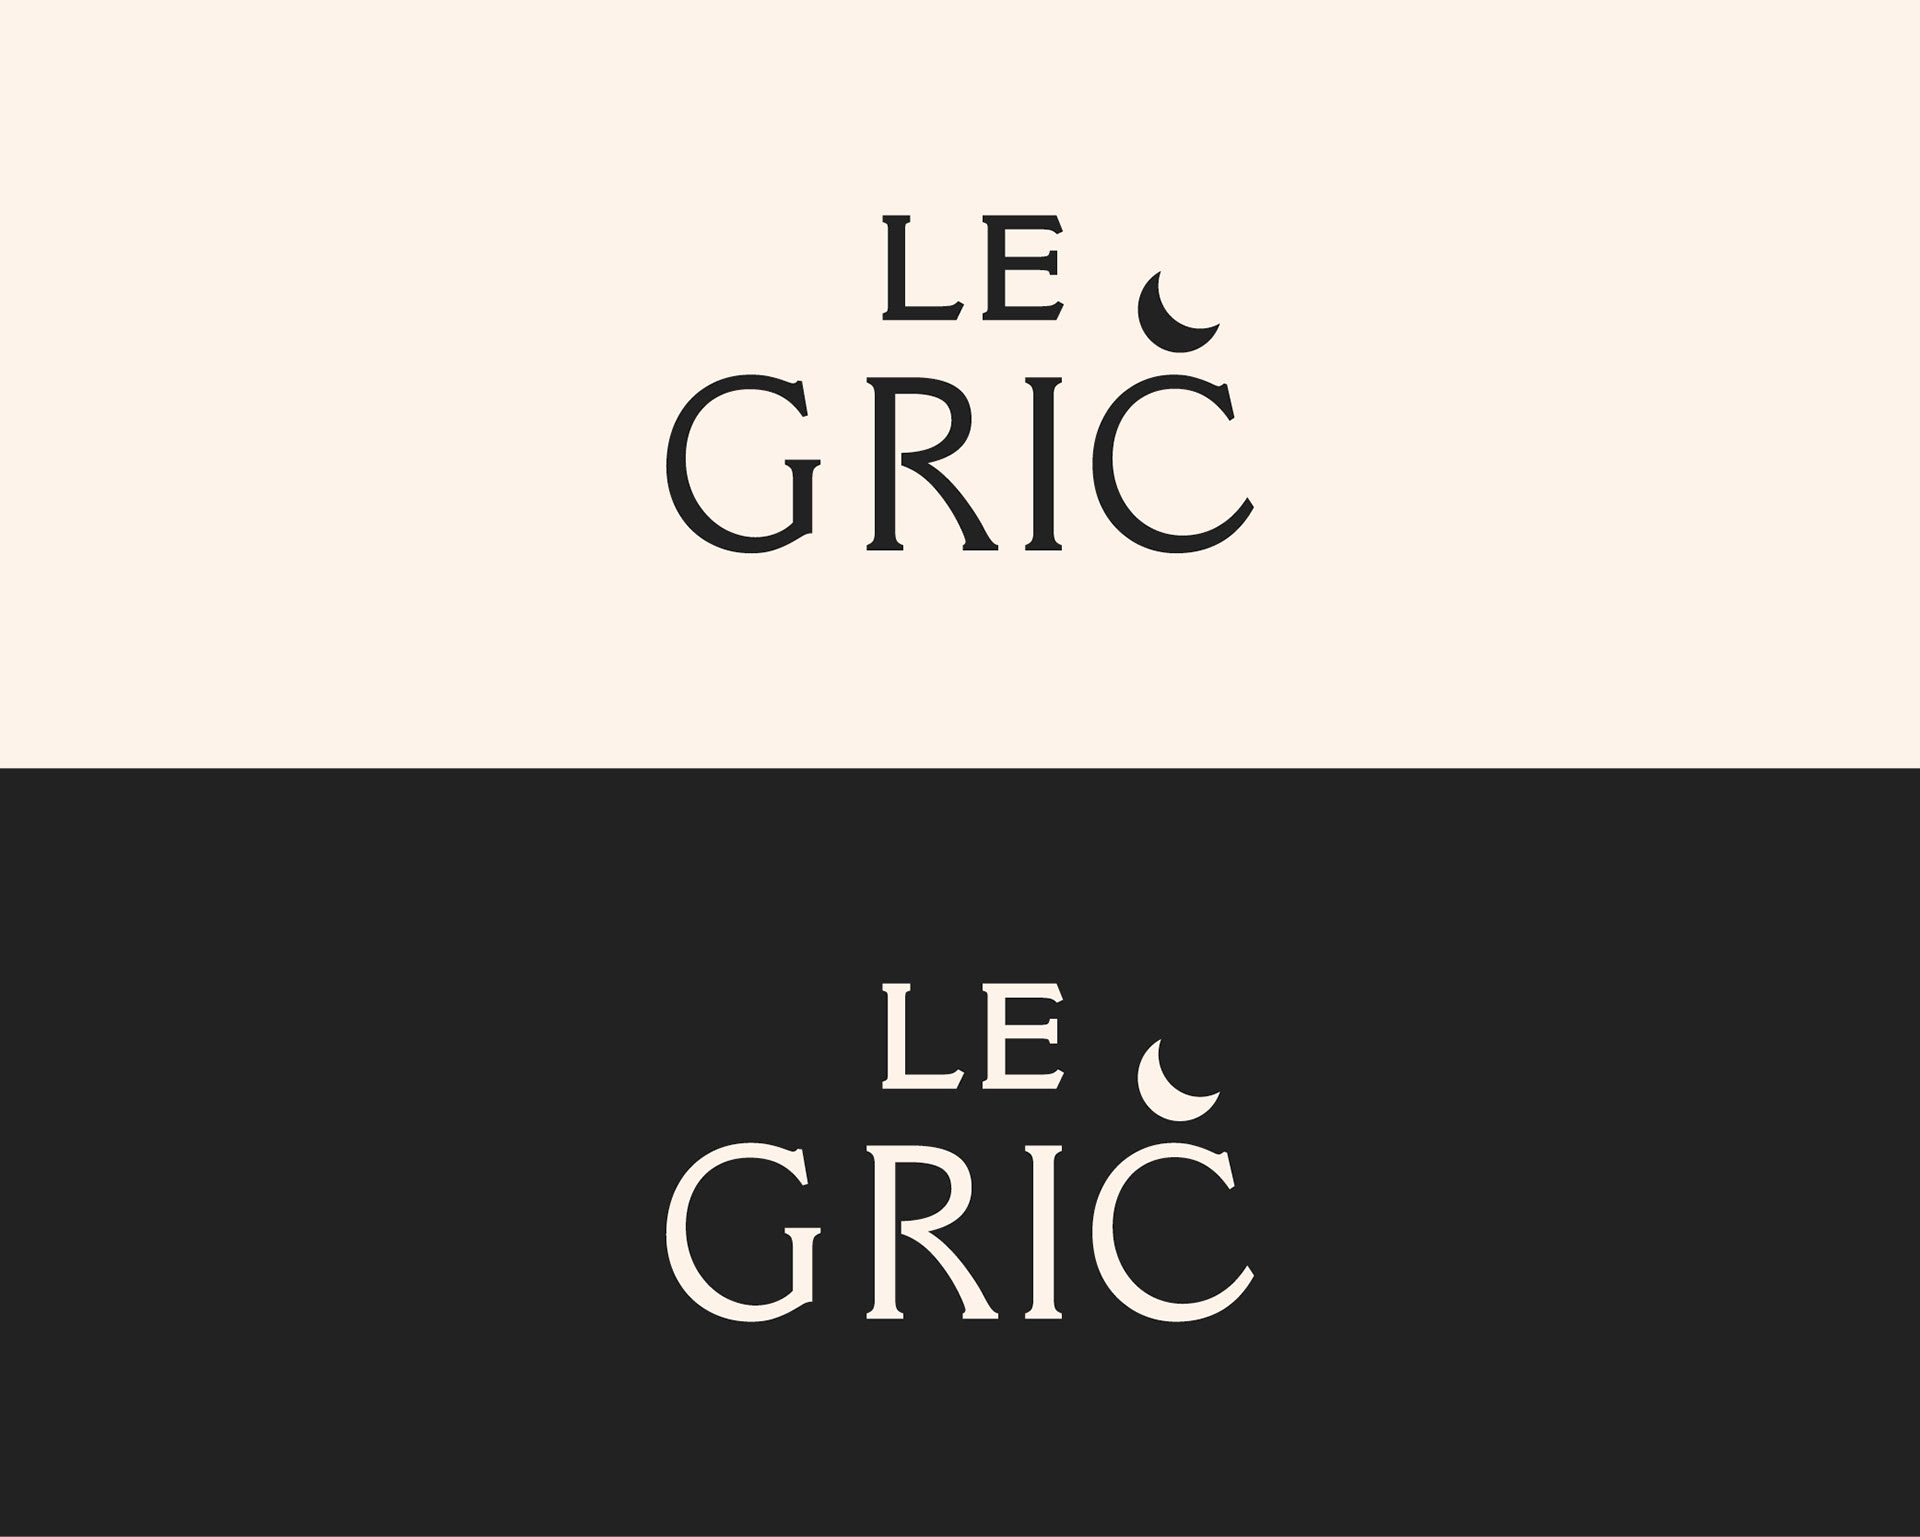 Le_gric_2